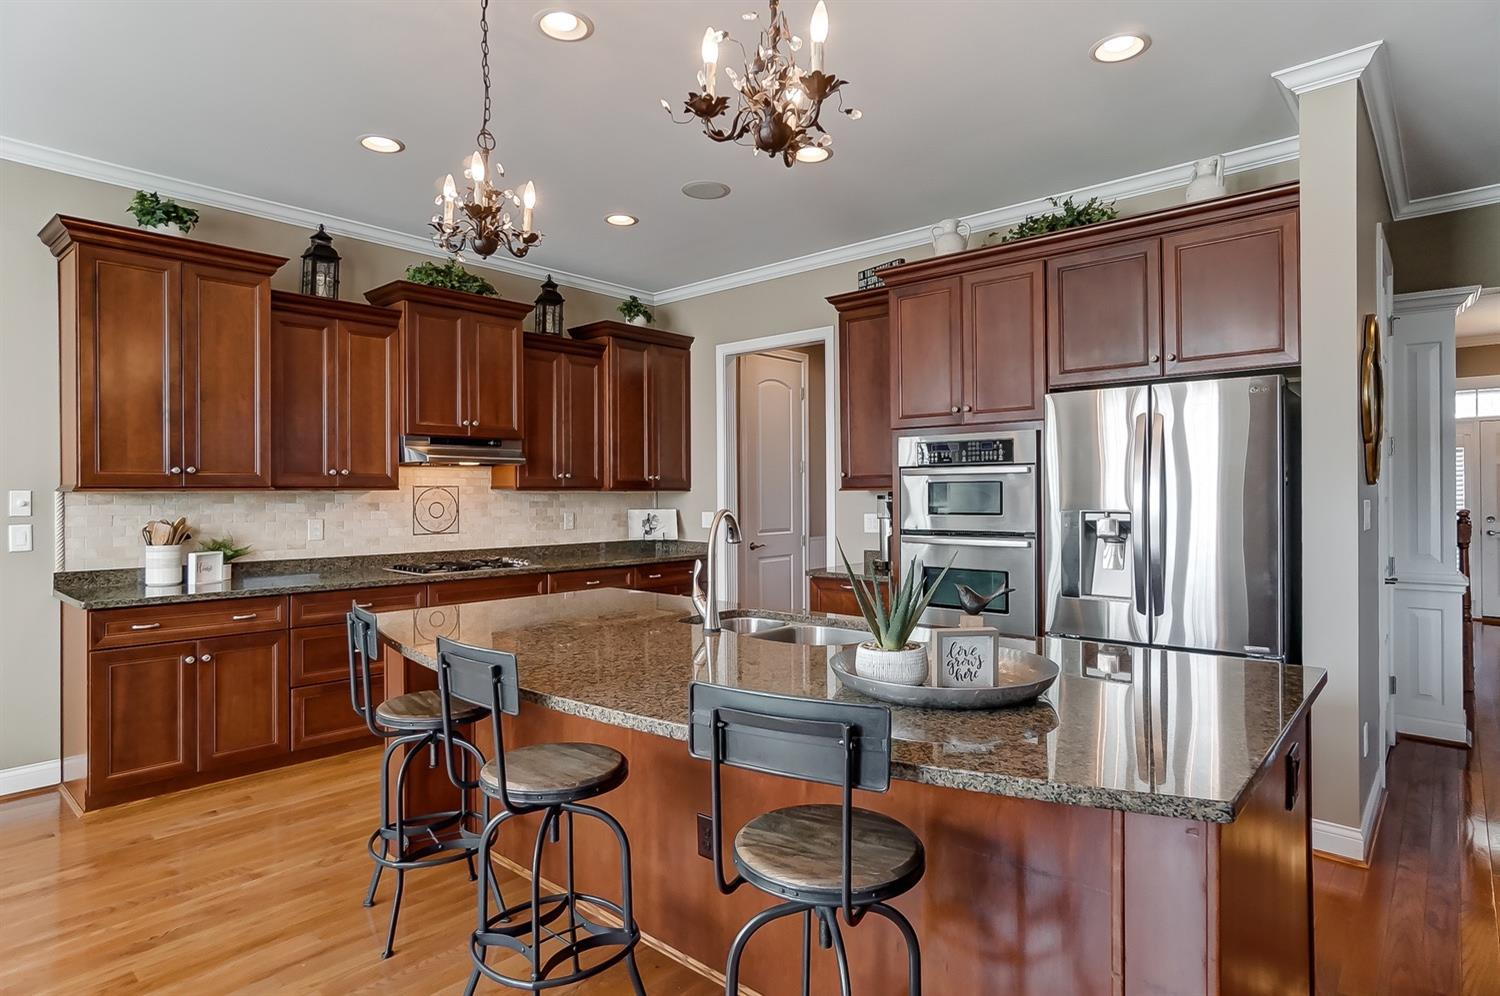 Gourmet kitchen with granite countertops; SS appliances and hardwood floors.